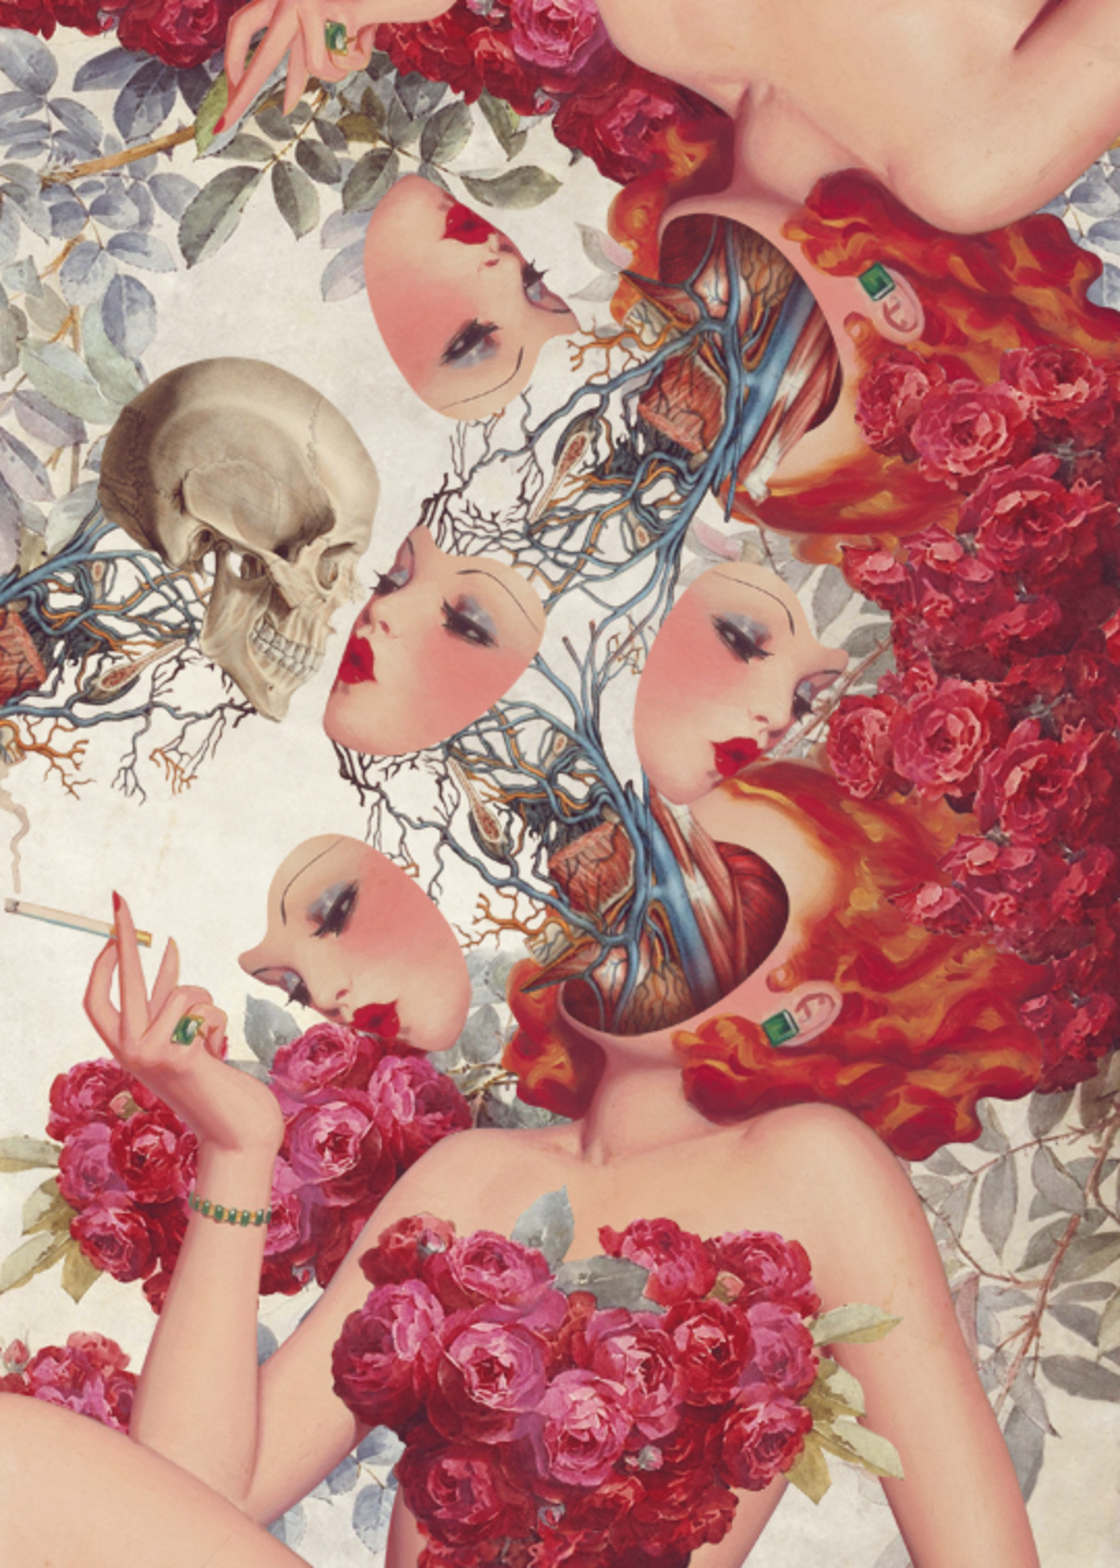 Pin-Up Anatomy - The latest surreal collages by FFO